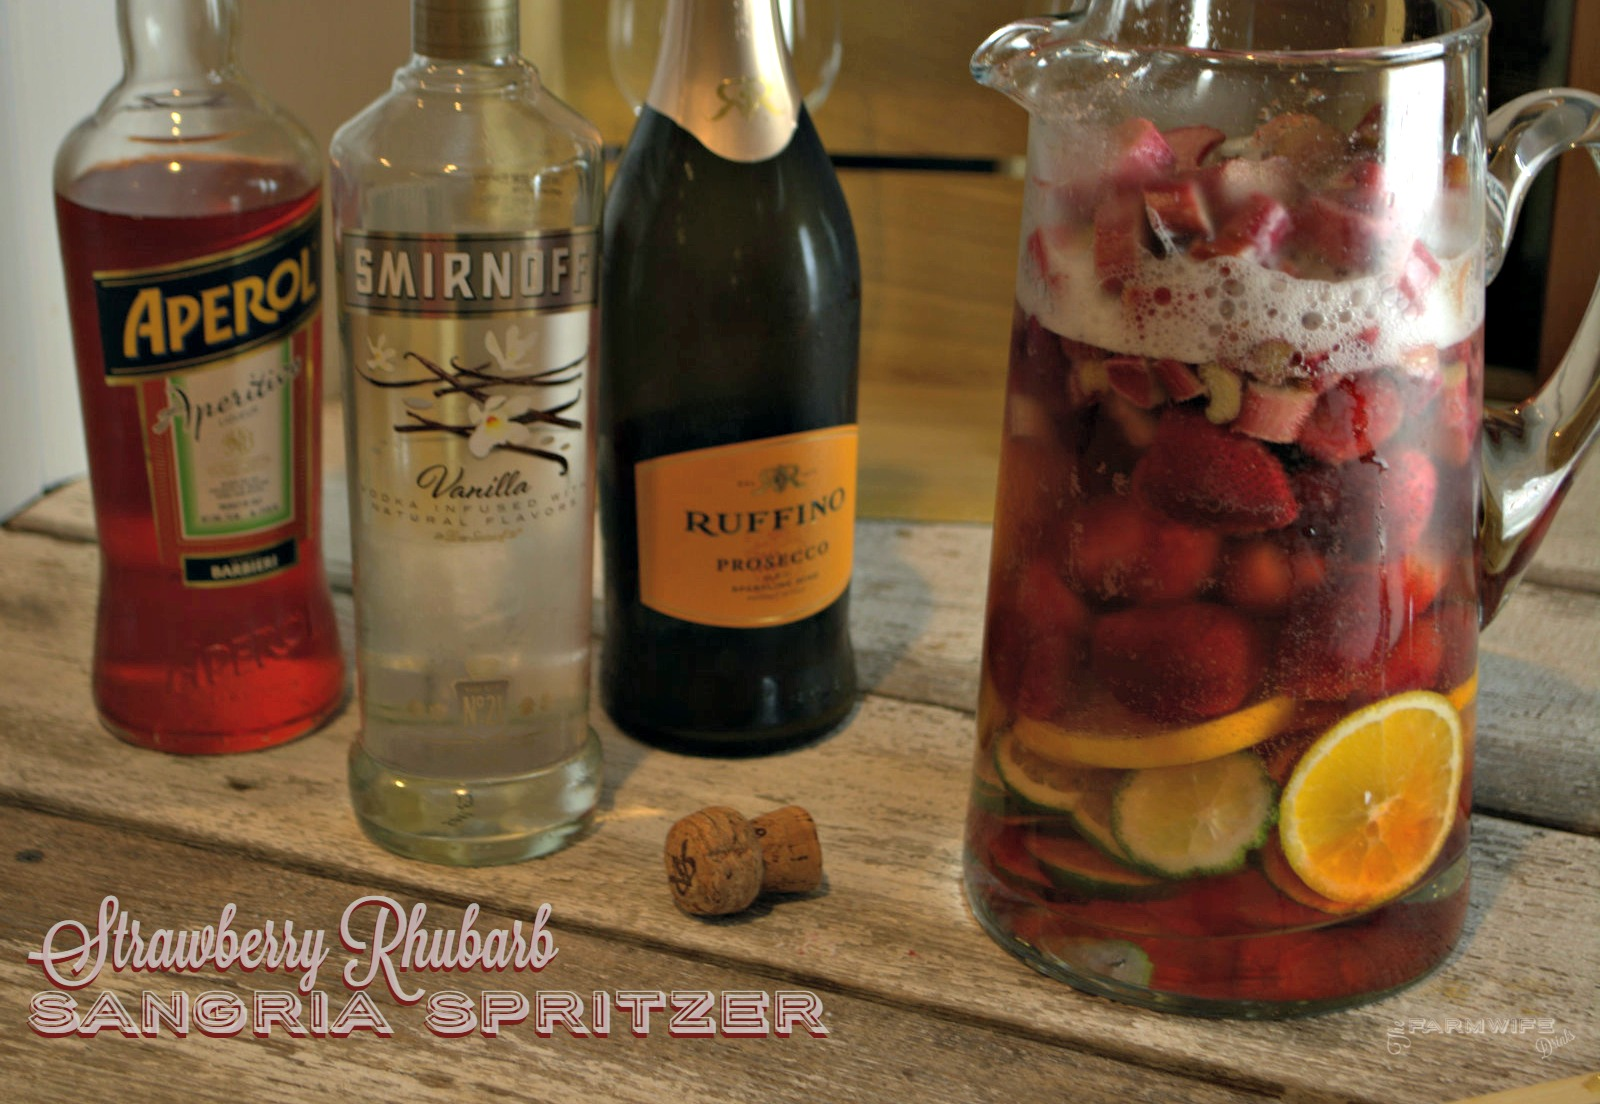 Strawberry Rhubarb Sangria Spritzer - The Farmwife Drinks